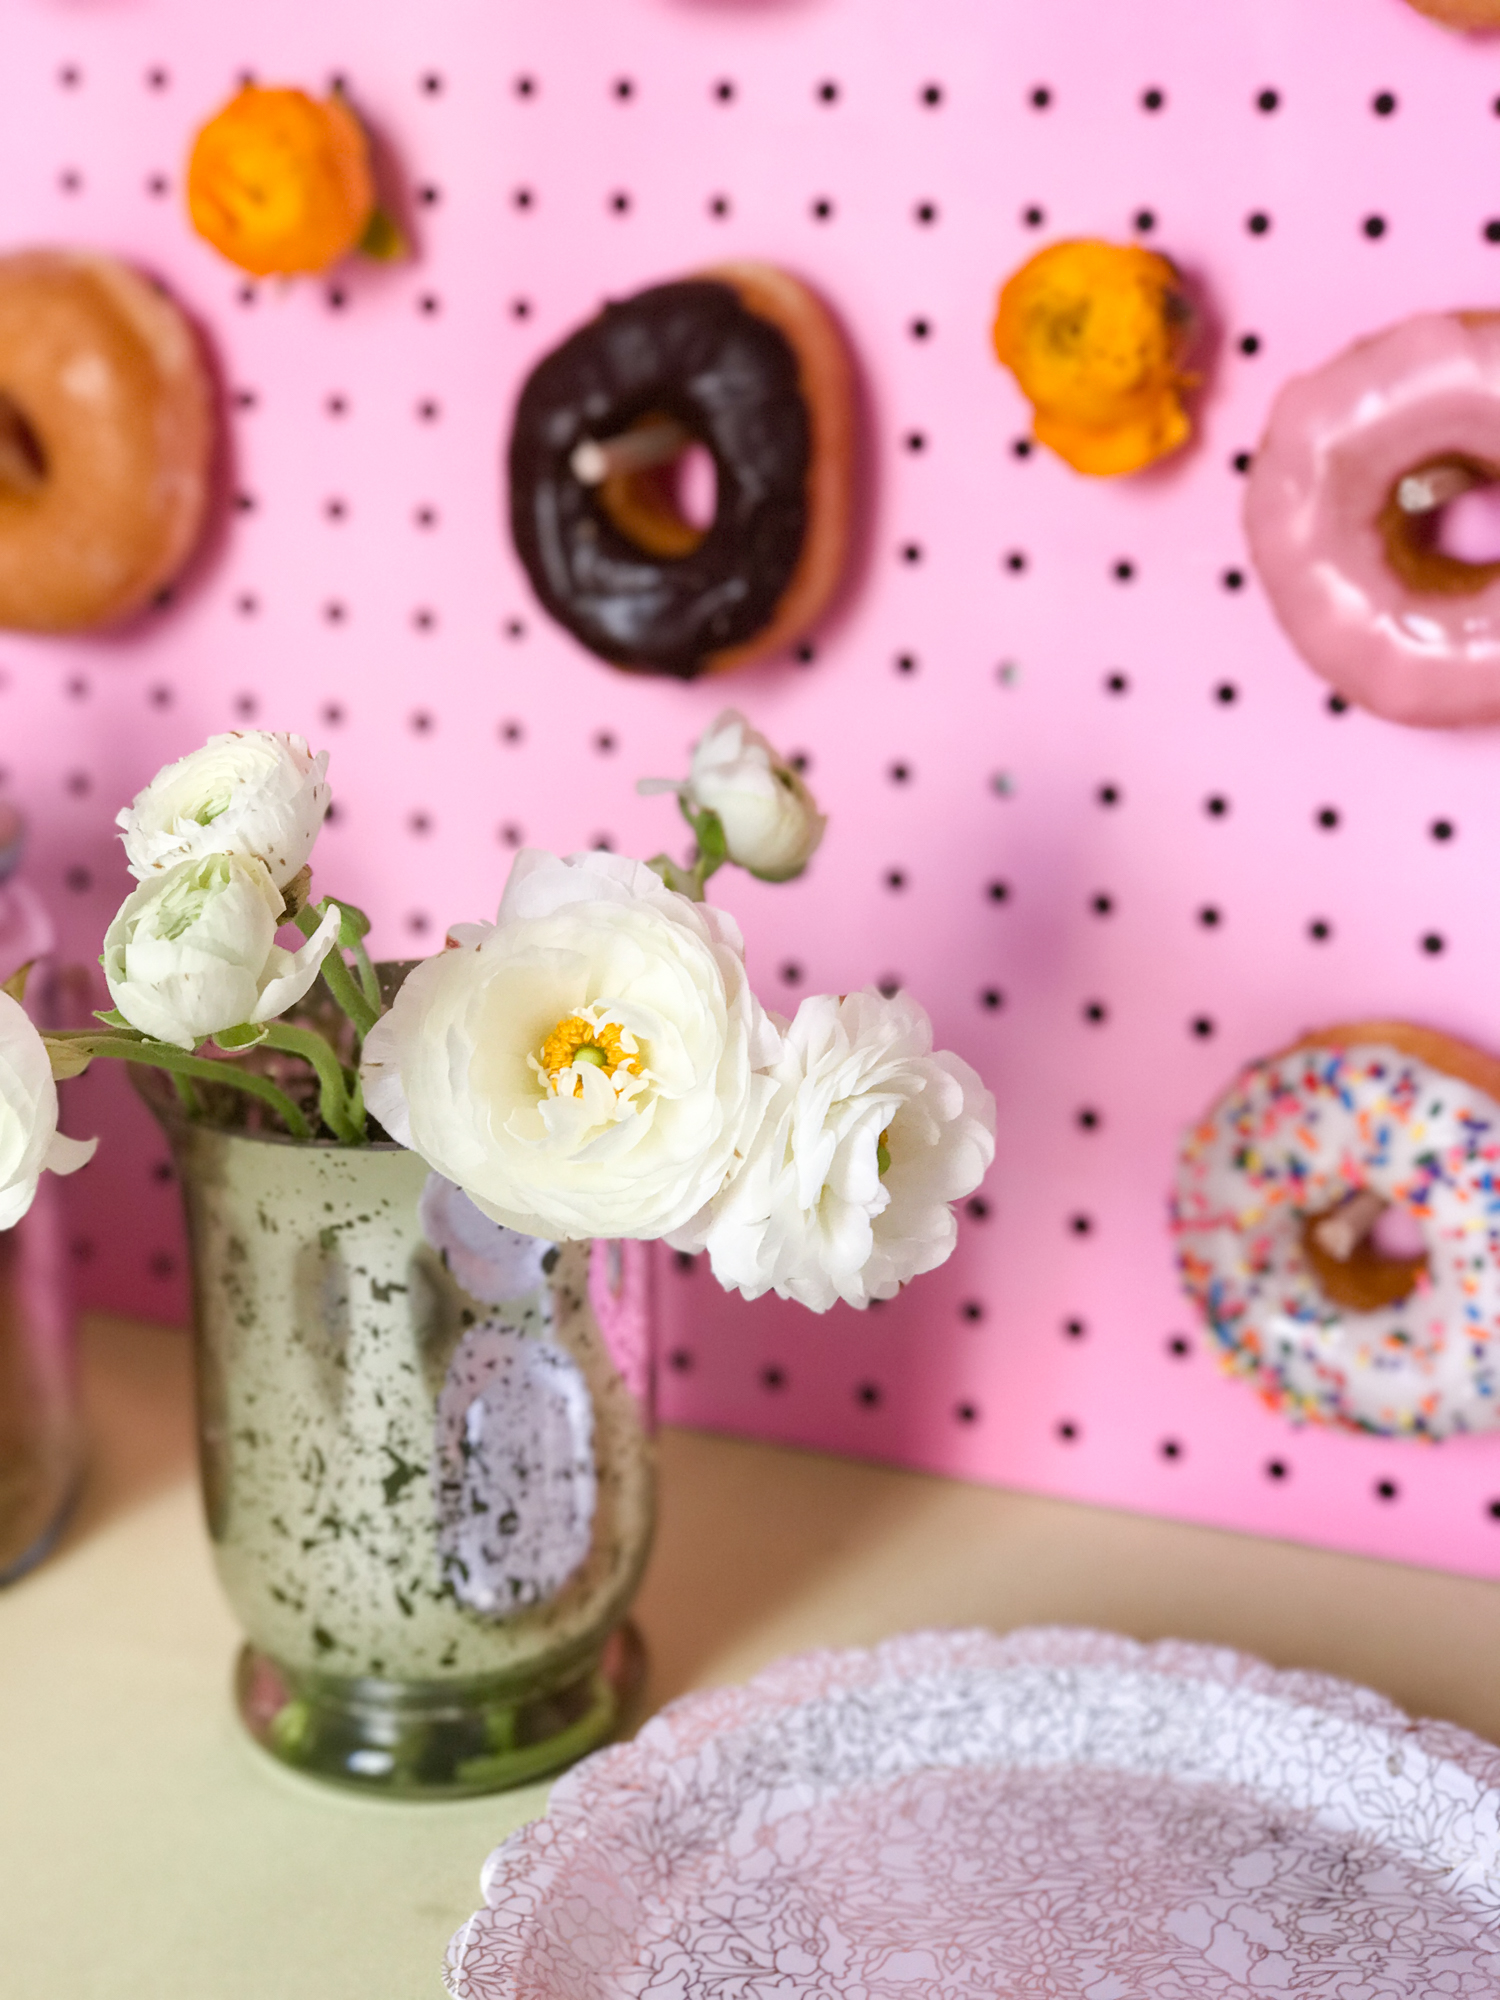 Blooms and a donut wall. I love this combination.